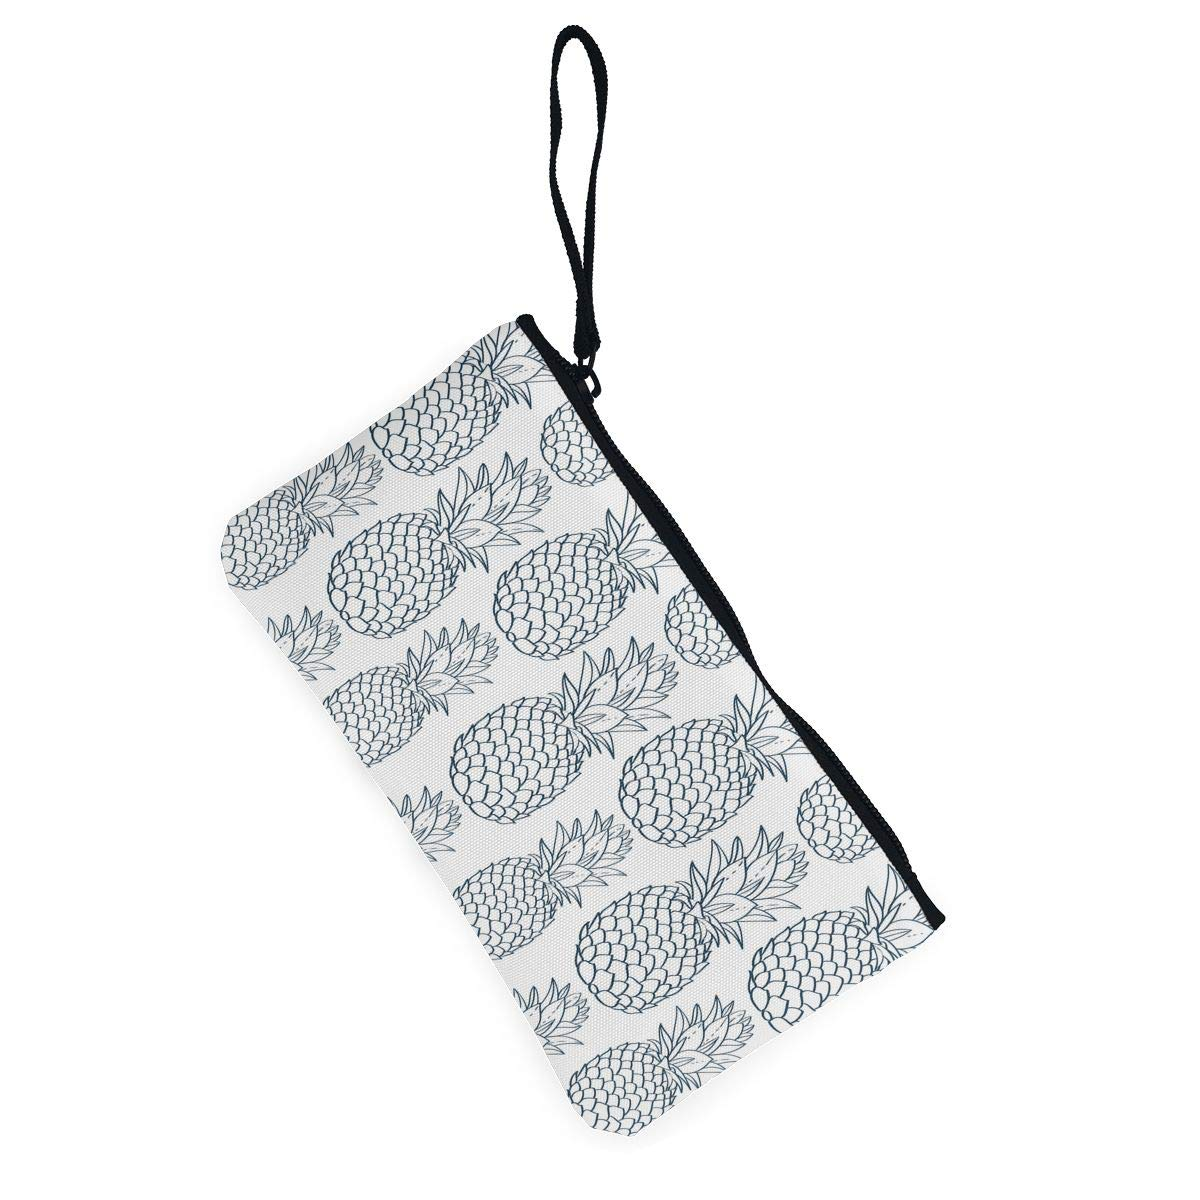 Bk55Oi/&/& Womens Vintage Coin Purse Fruit Pattern Canvas Card Wallet with Zipper for Women